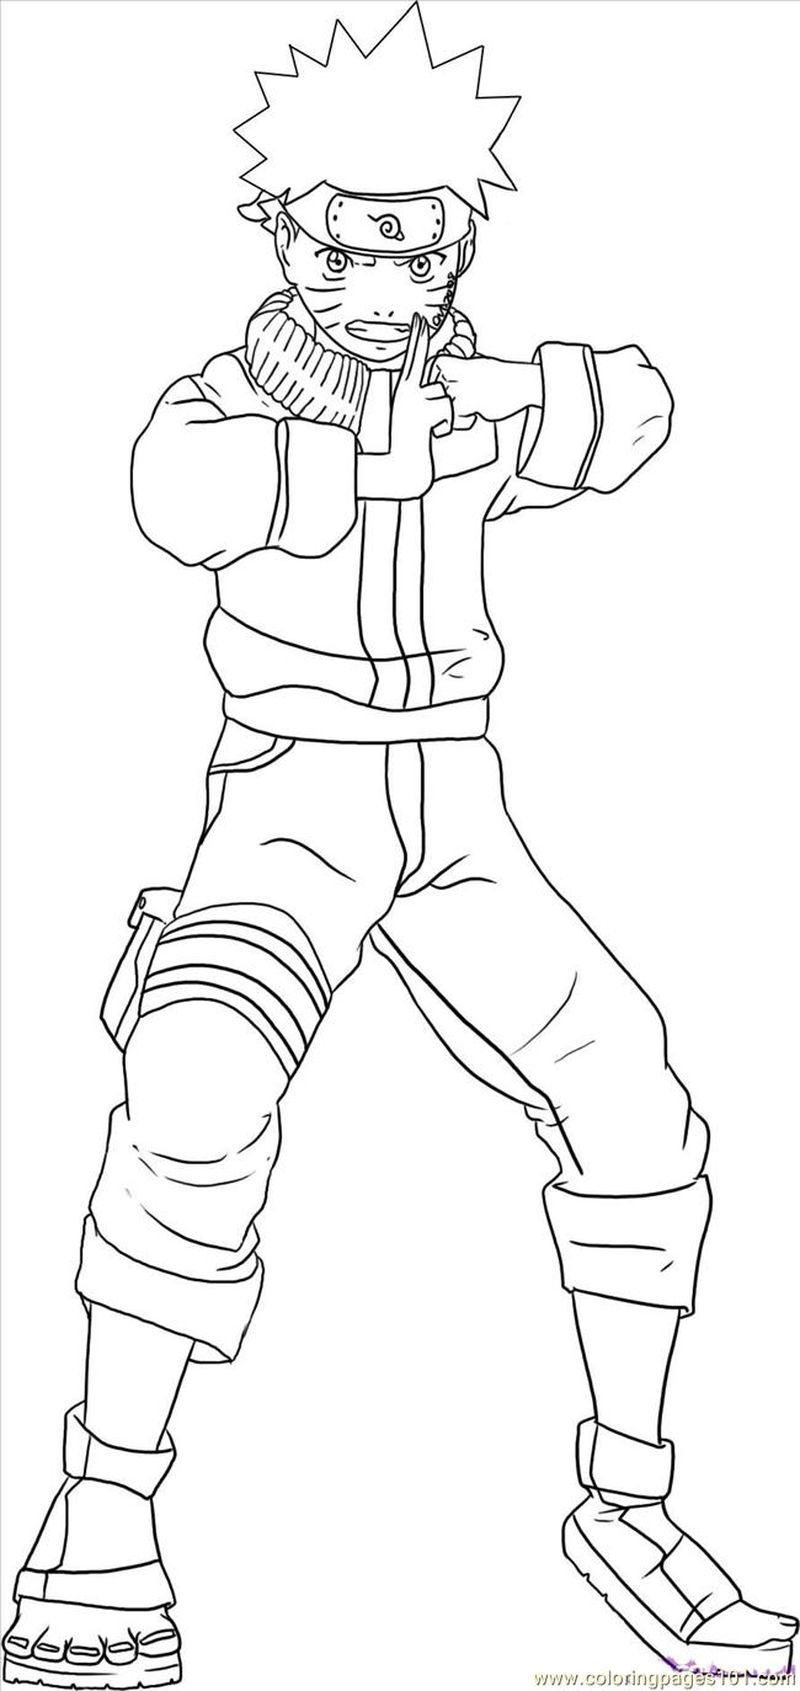 Naruto Shippuden Coloring Pages Printable